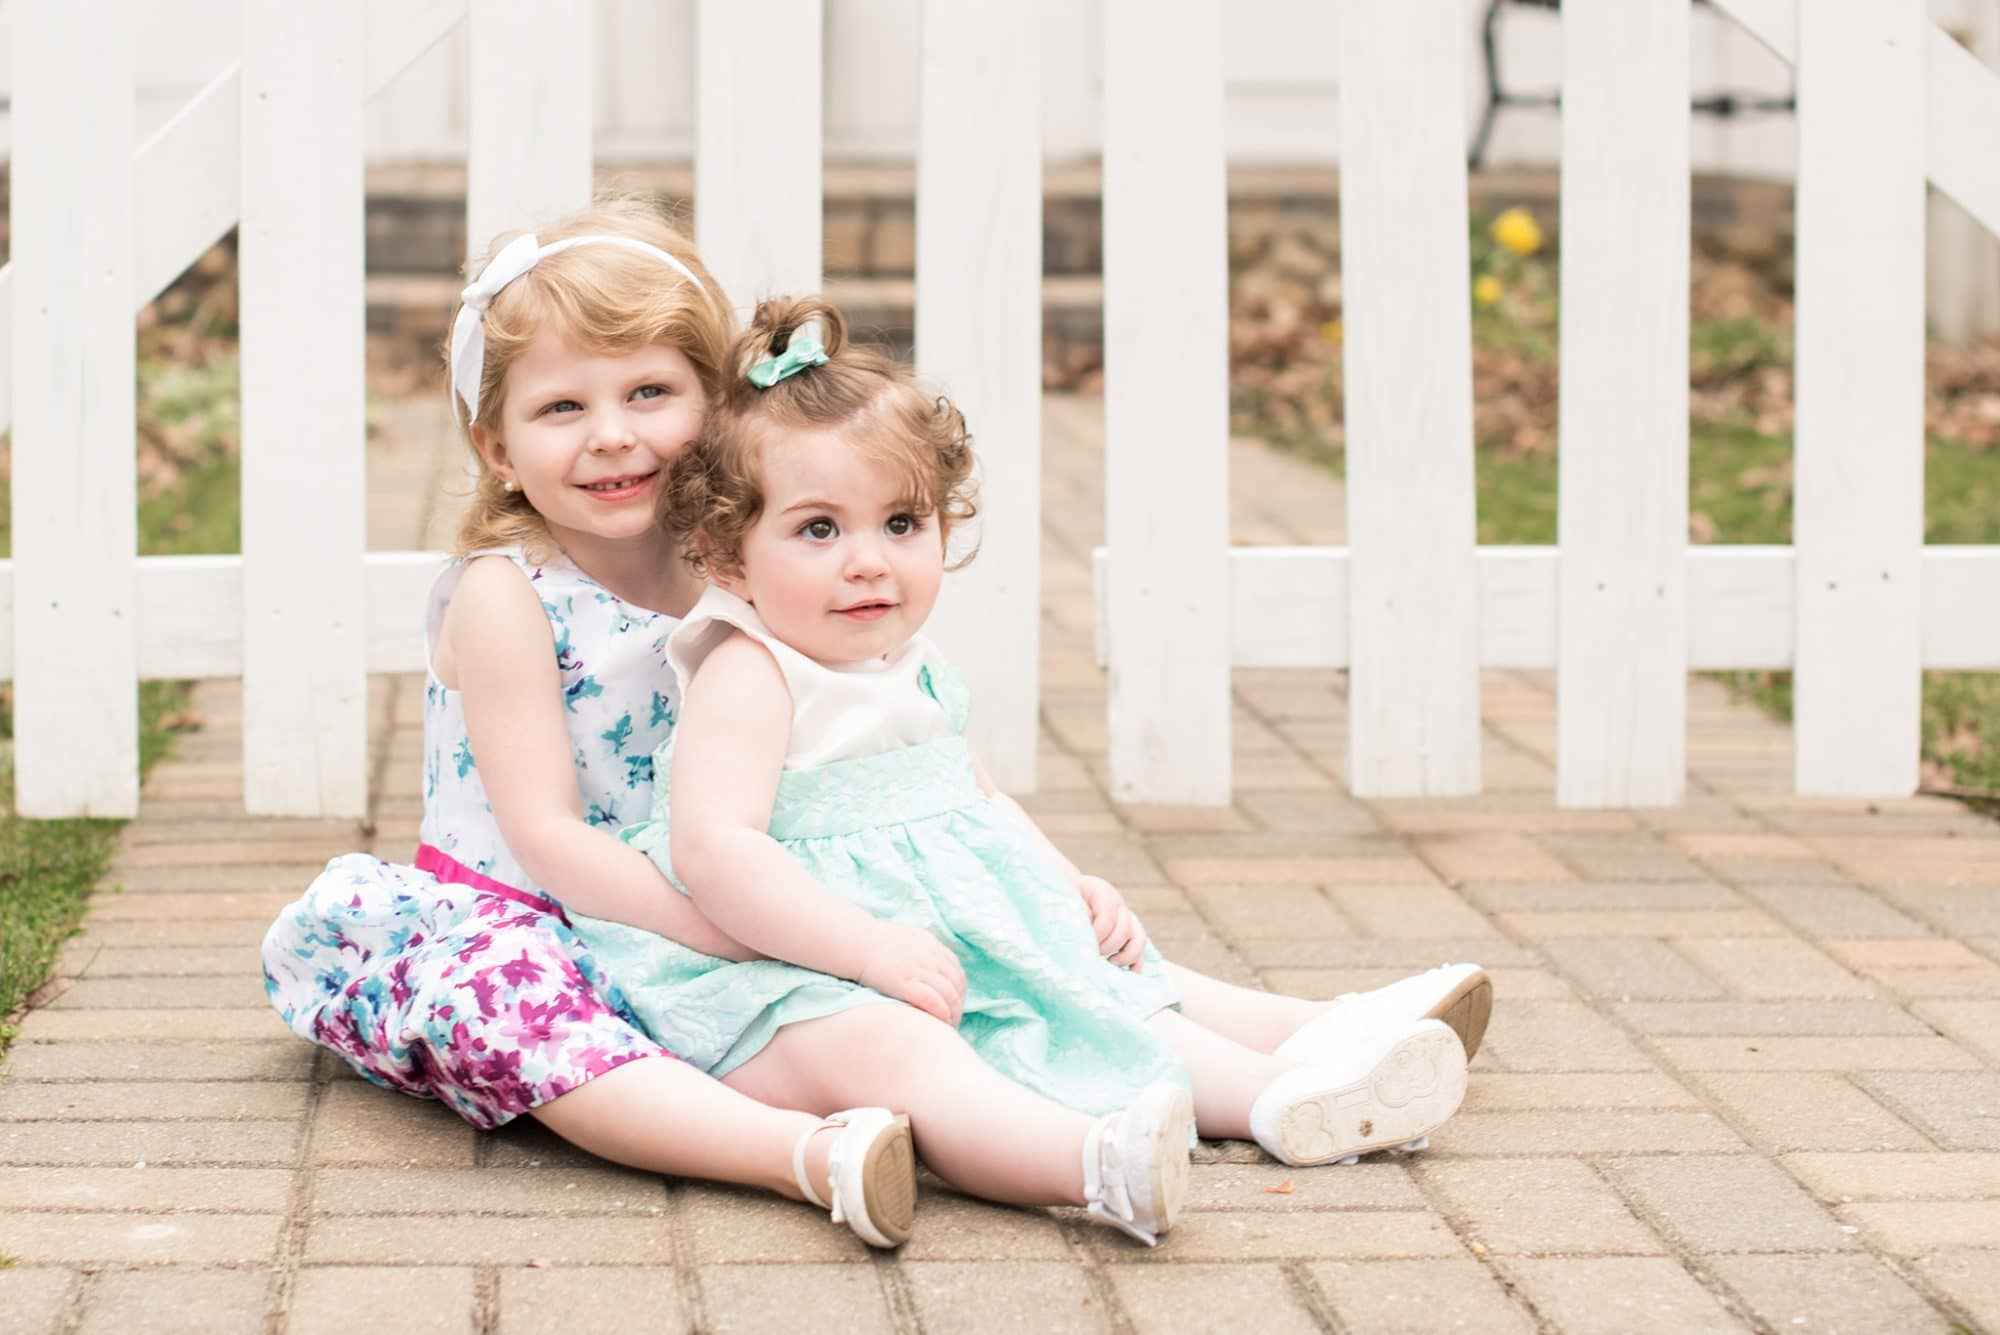 10 TIps for What to Wear for Family Photos | Family Pictures | Luminant Photography | Lafayette, Indiana Family Photographer | Family Photo Tips